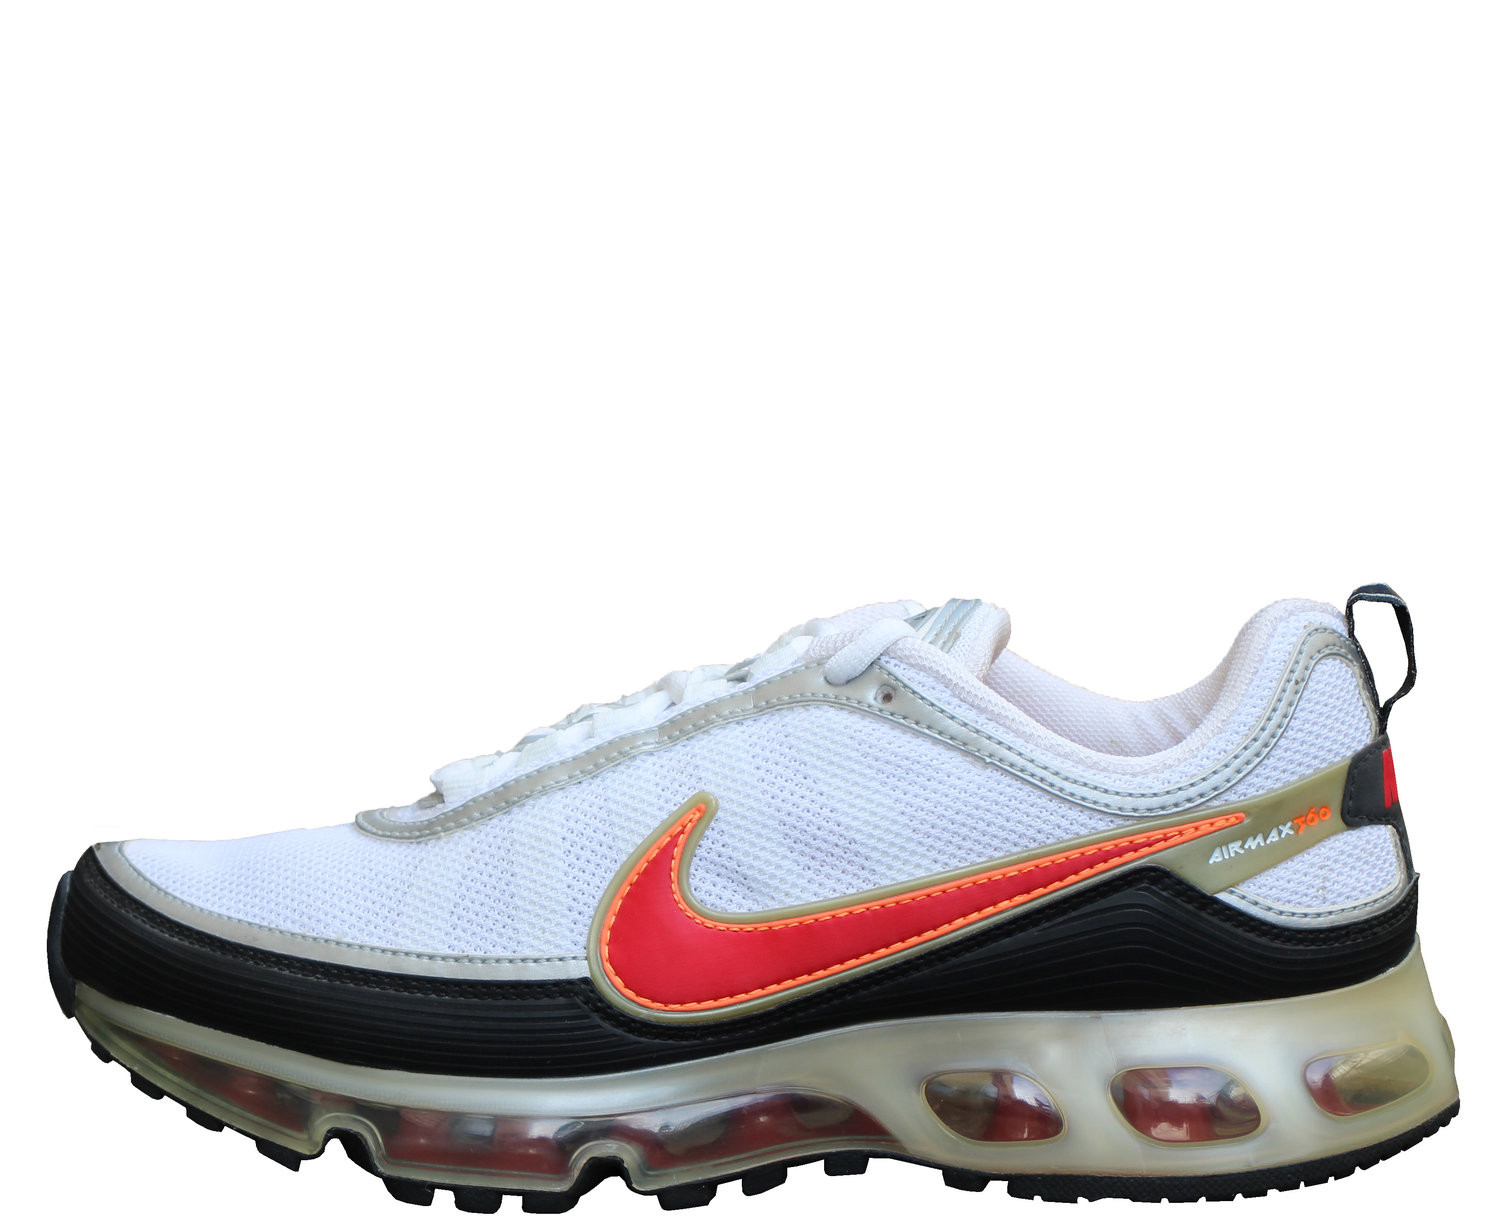 Nike Air Max 360 II White Red Tart Black (Size 8.5) DS — Roots